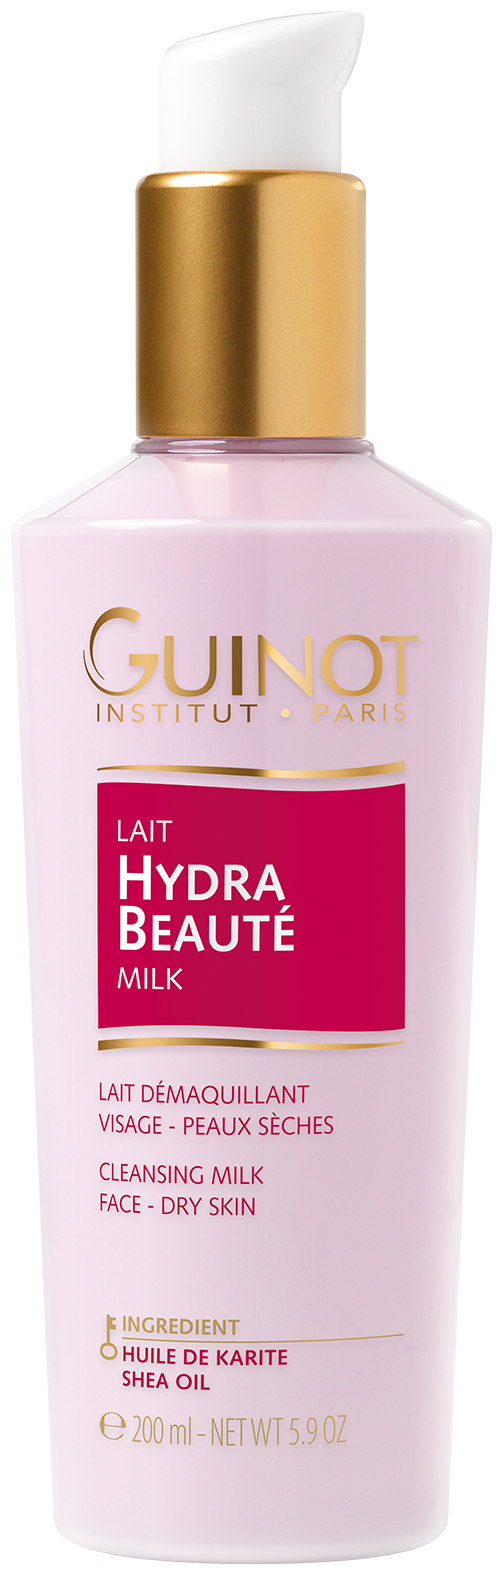 Guinot Lait Hydra Beaute - Cleansing Milk for Dry Skin